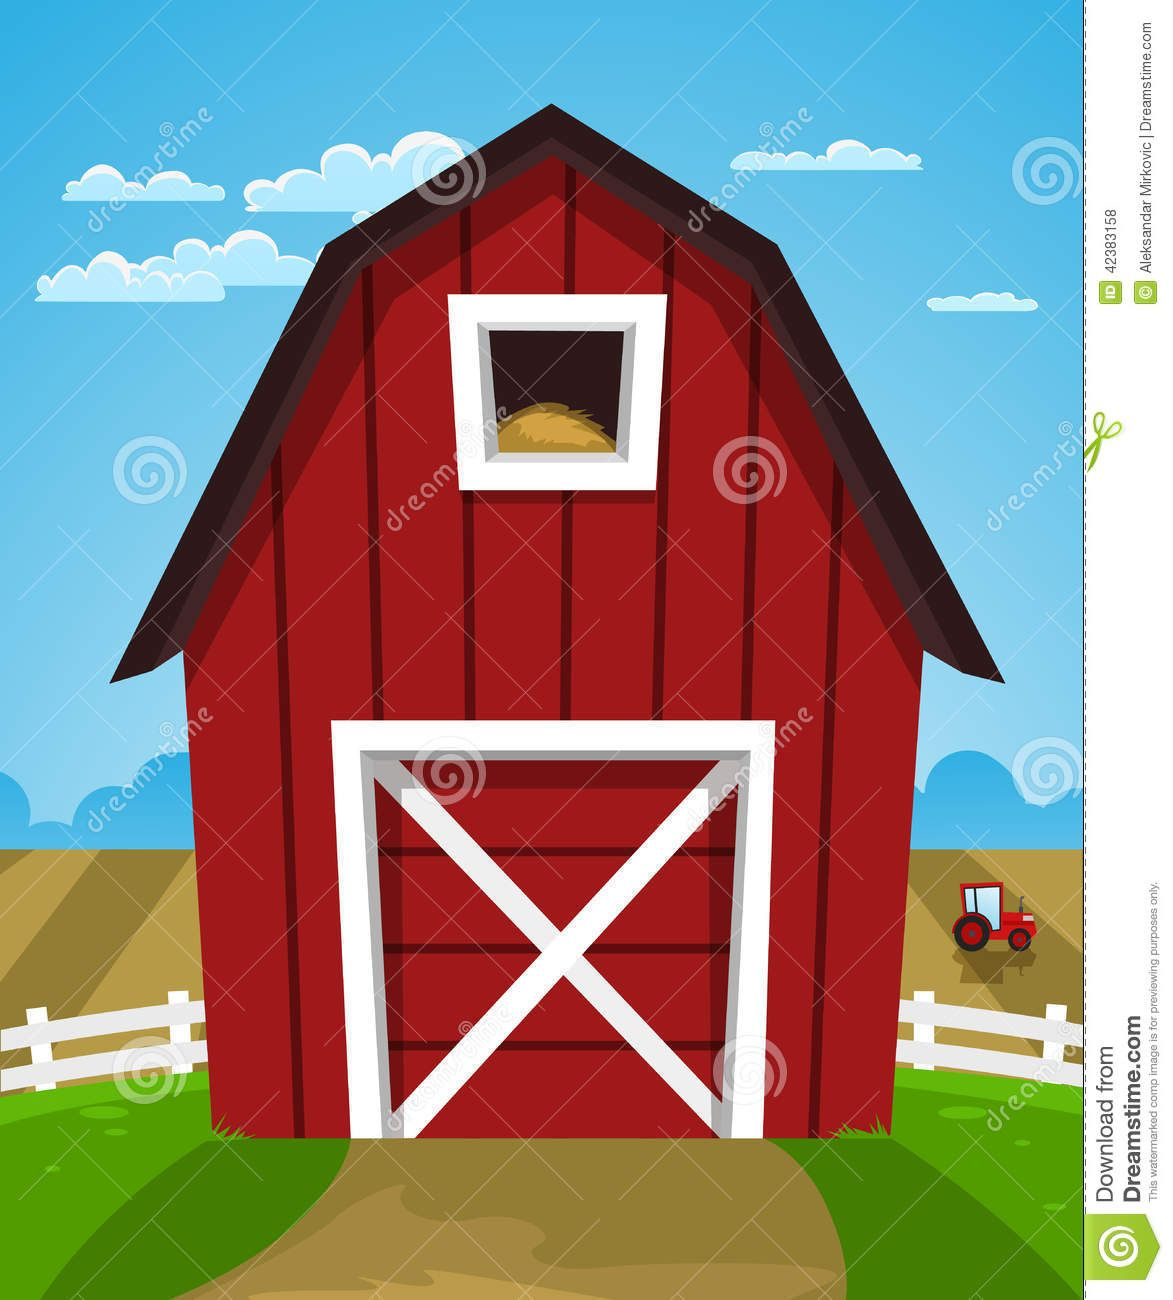 Farm Barn red farm barn - download from over 43 million high quality stock